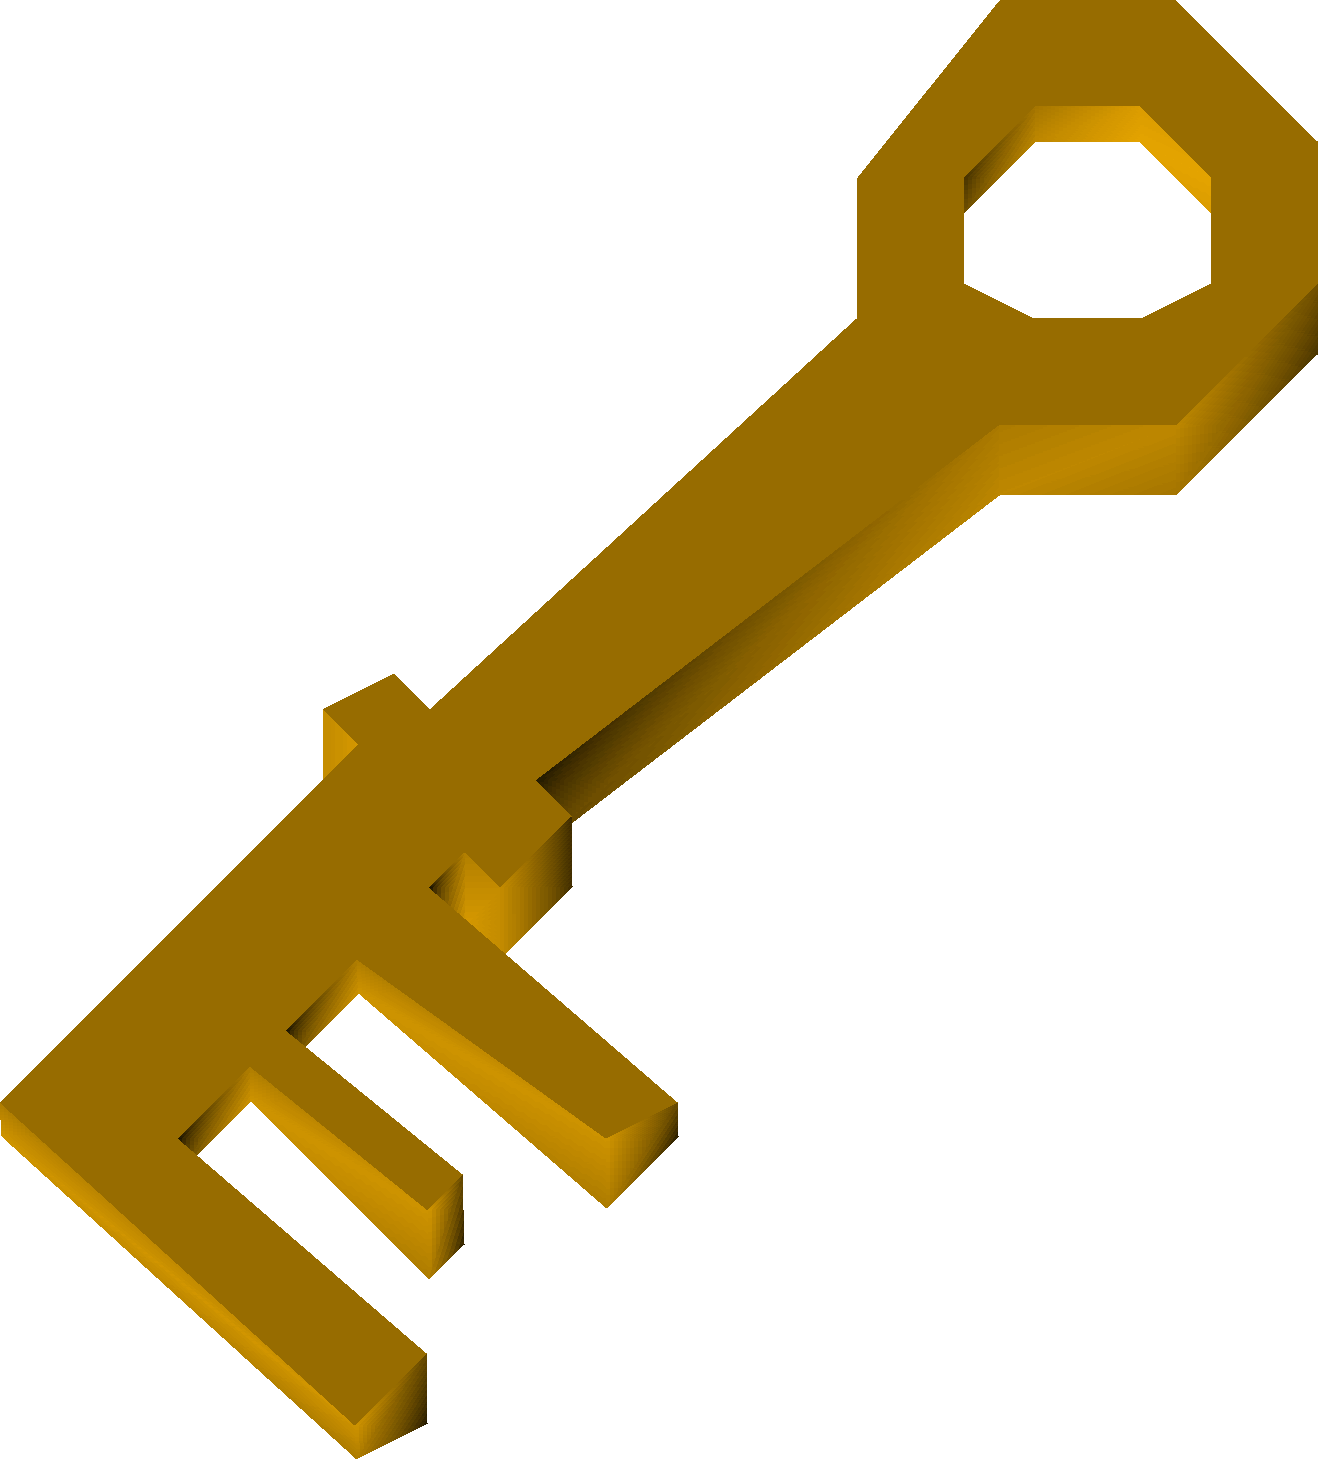 Key to house clipart clipart free stock Image Key Free Download Clip Art - carwad.net clipart free stock